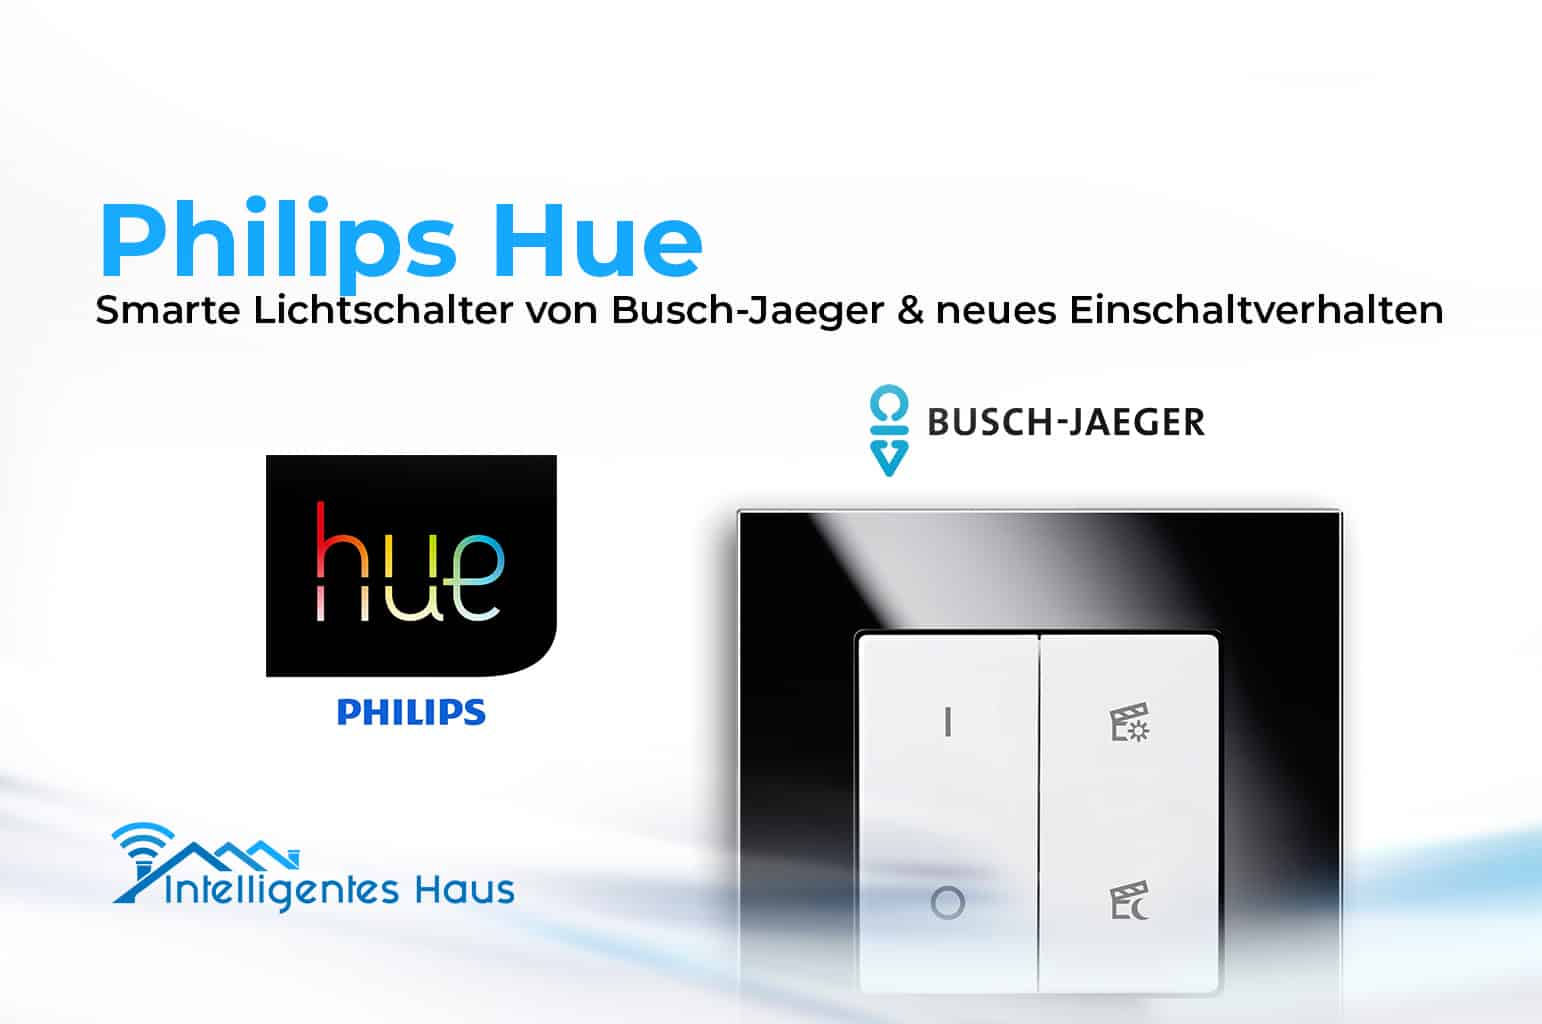 philips hue busch jaeger partnerschaft neue lichtschalter angek ndigt. Black Bedroom Furniture Sets. Home Design Ideas